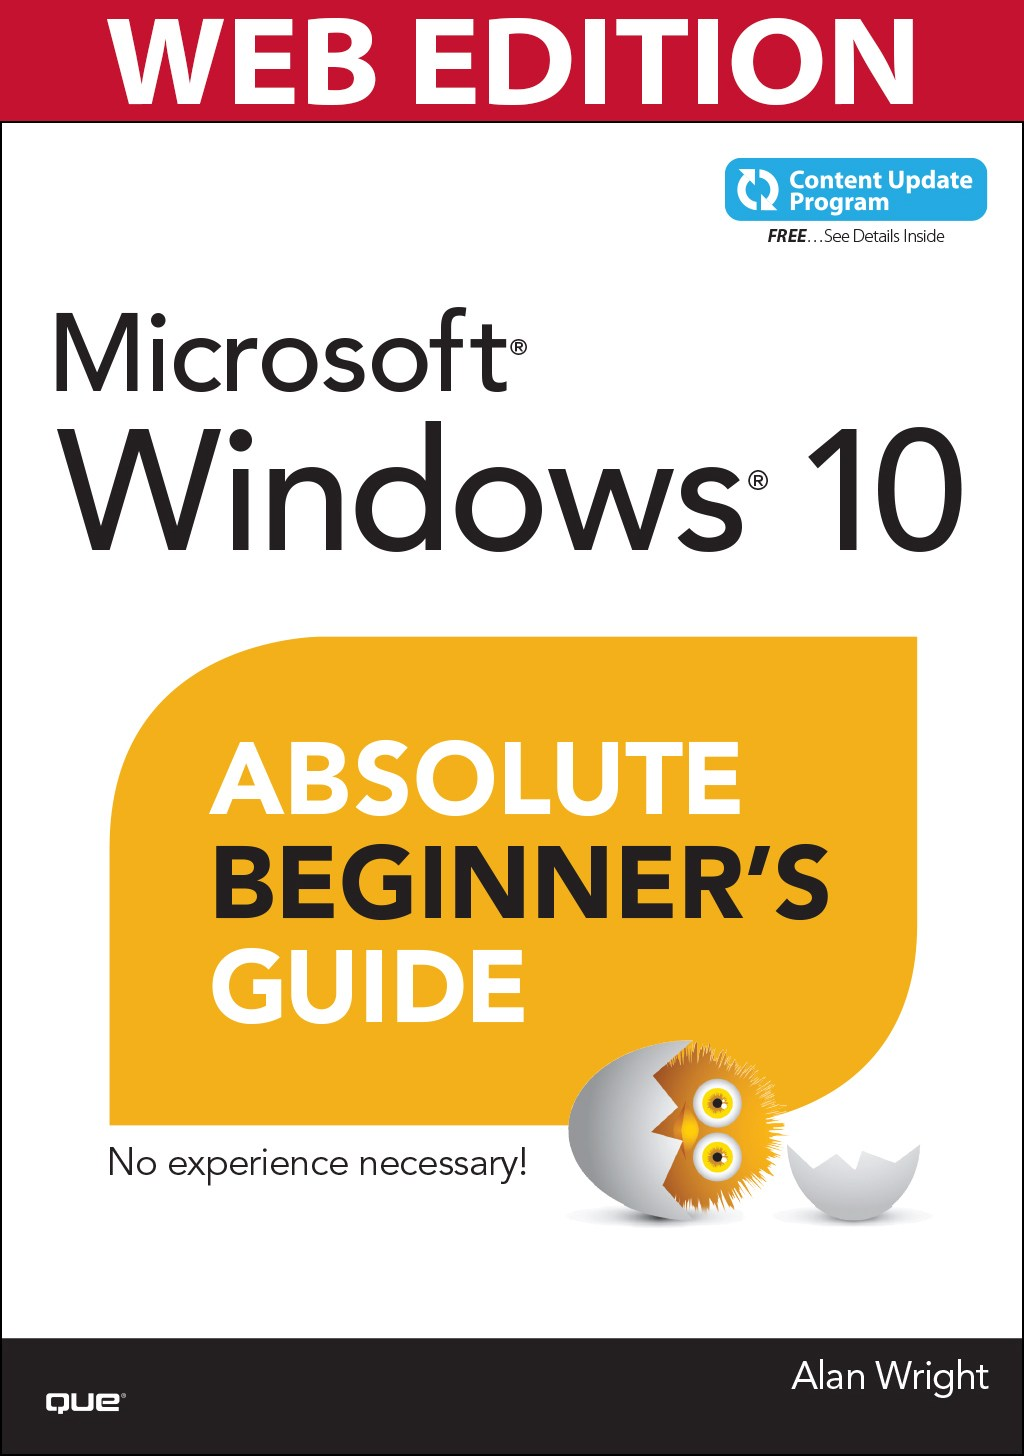 Windows 10 Absolute Beginner's Guide (Web Edition and Content Update Program)